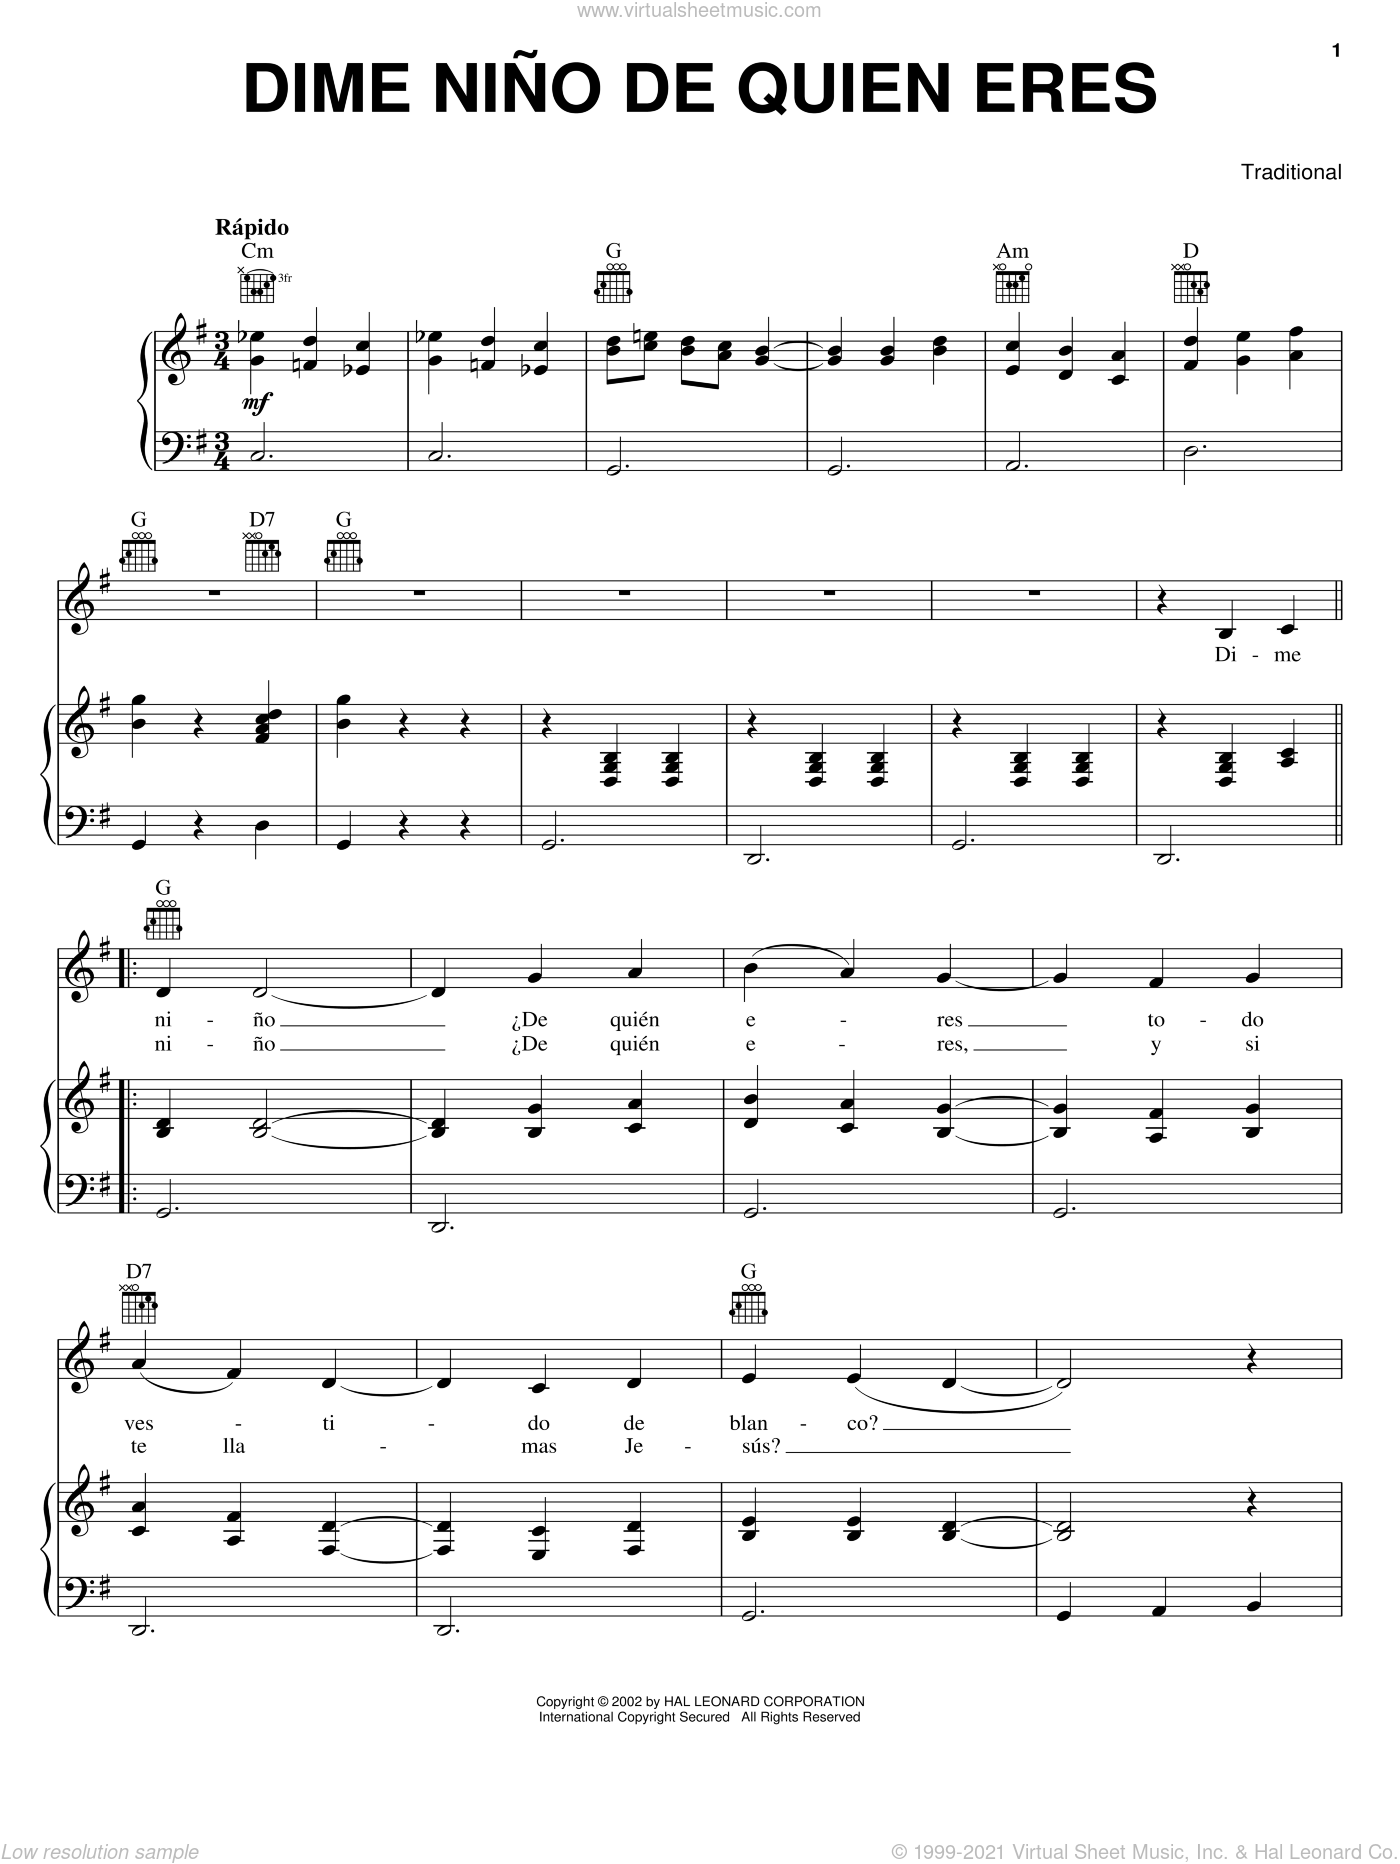 Dime Nino De Quien Eres sheet music for voice, piano or guitar, intermediate skill level